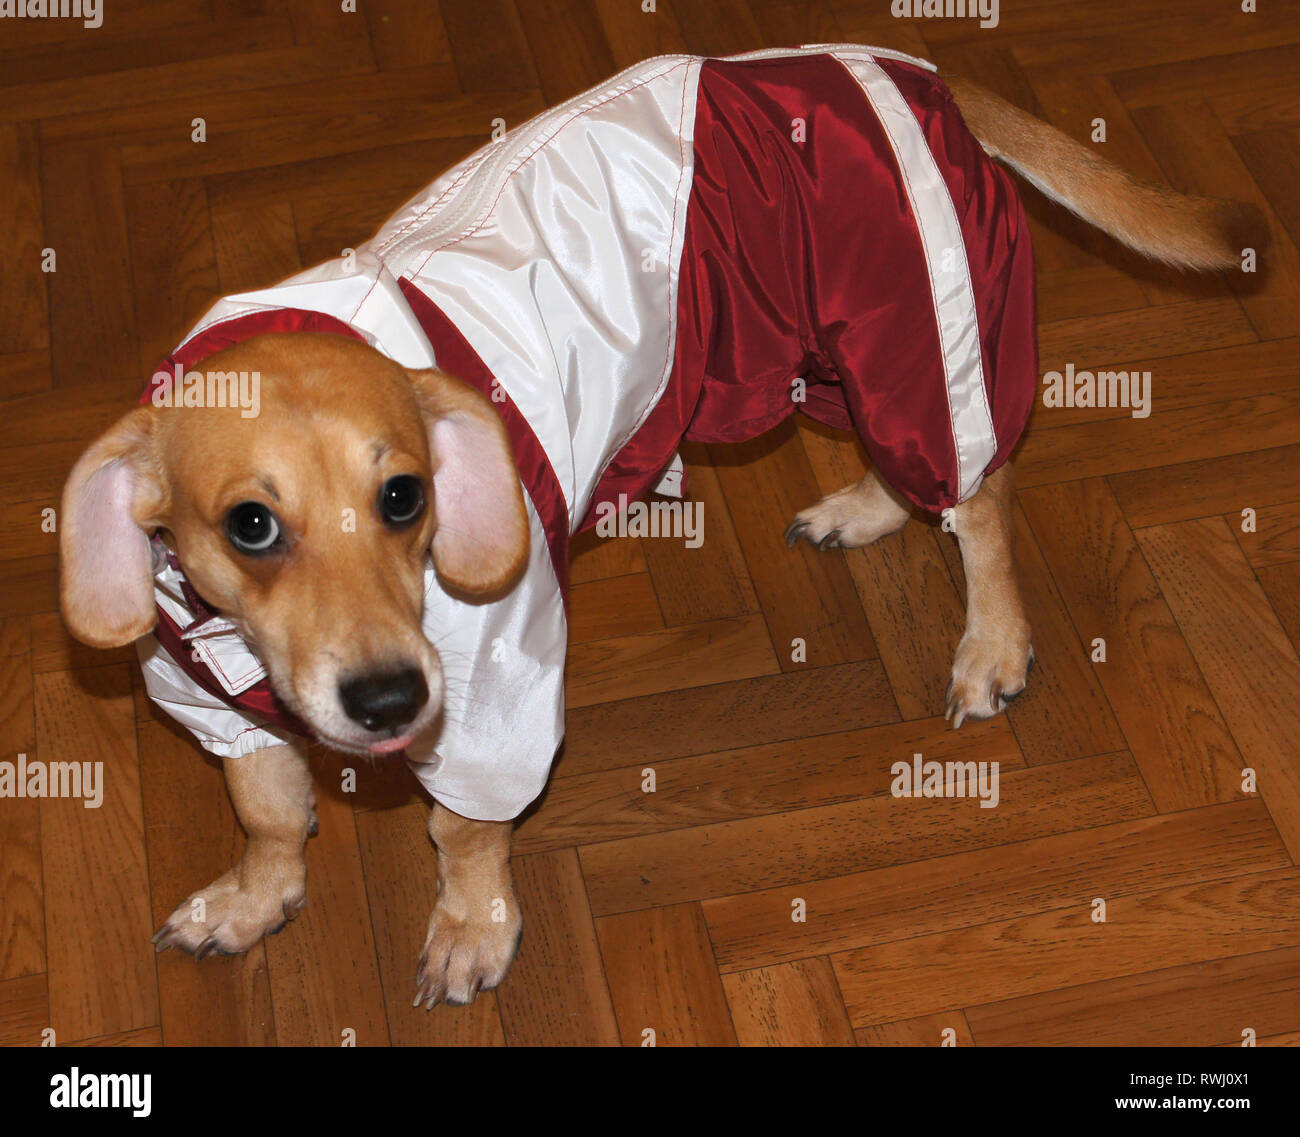 Dog dressed in nylon overalls - Stock Image